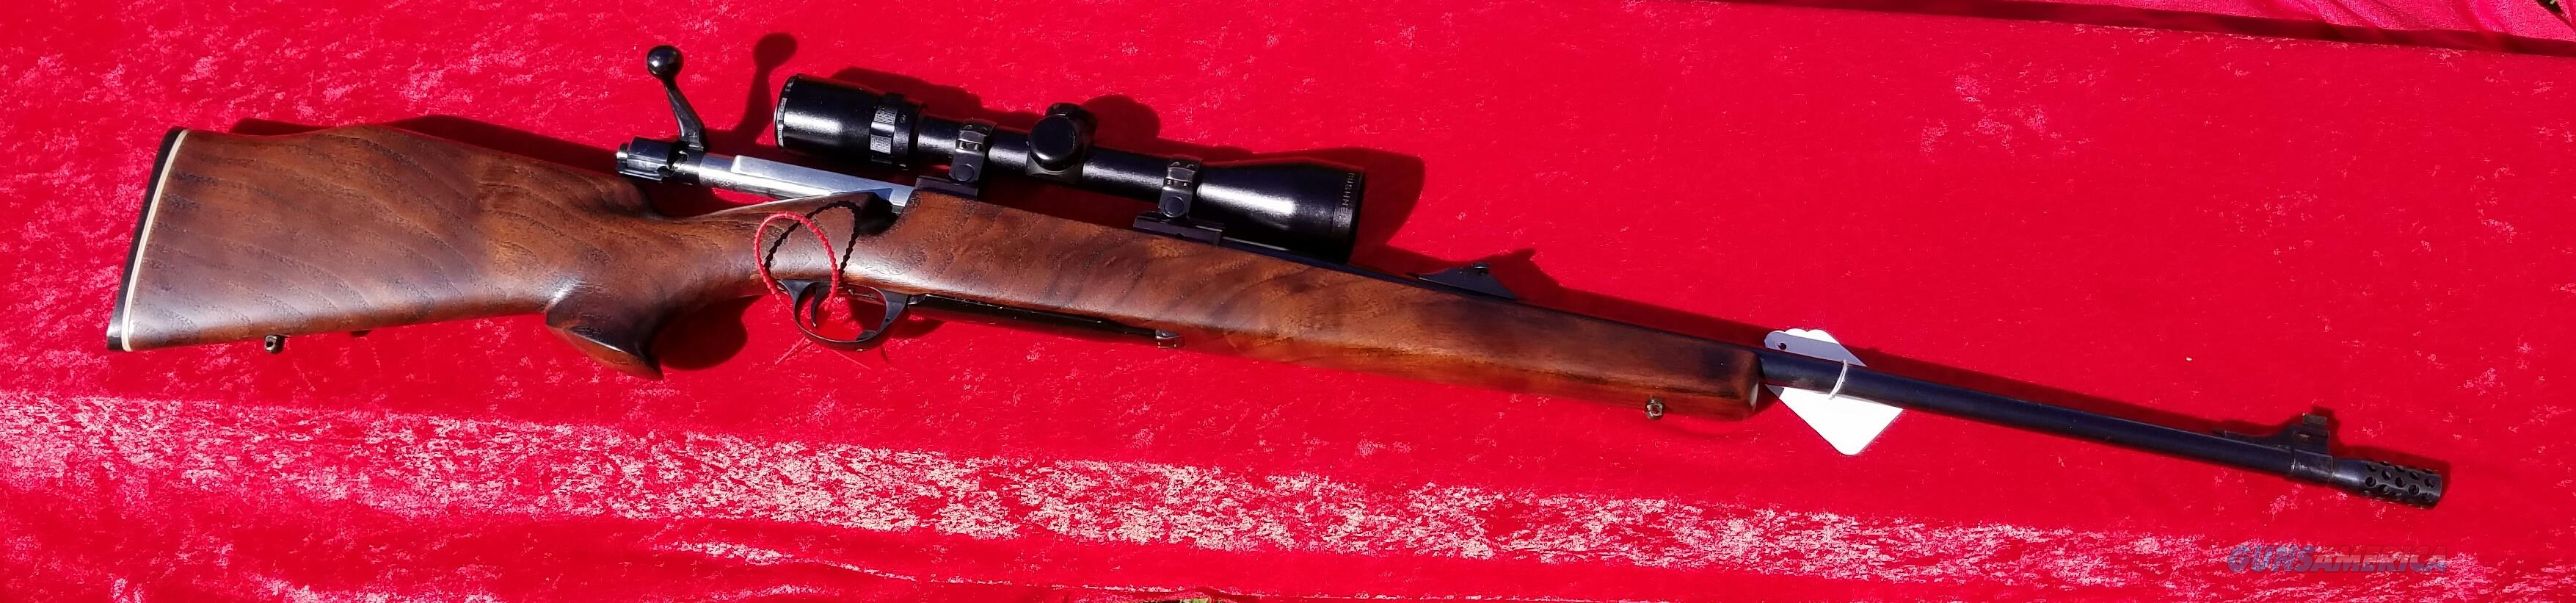 Ruger M77 30-06 Beautiful Stock GC Muzzle Break Bushnell Banner 3x9  Guns > Rifles > Ruger Rifles > Model 77